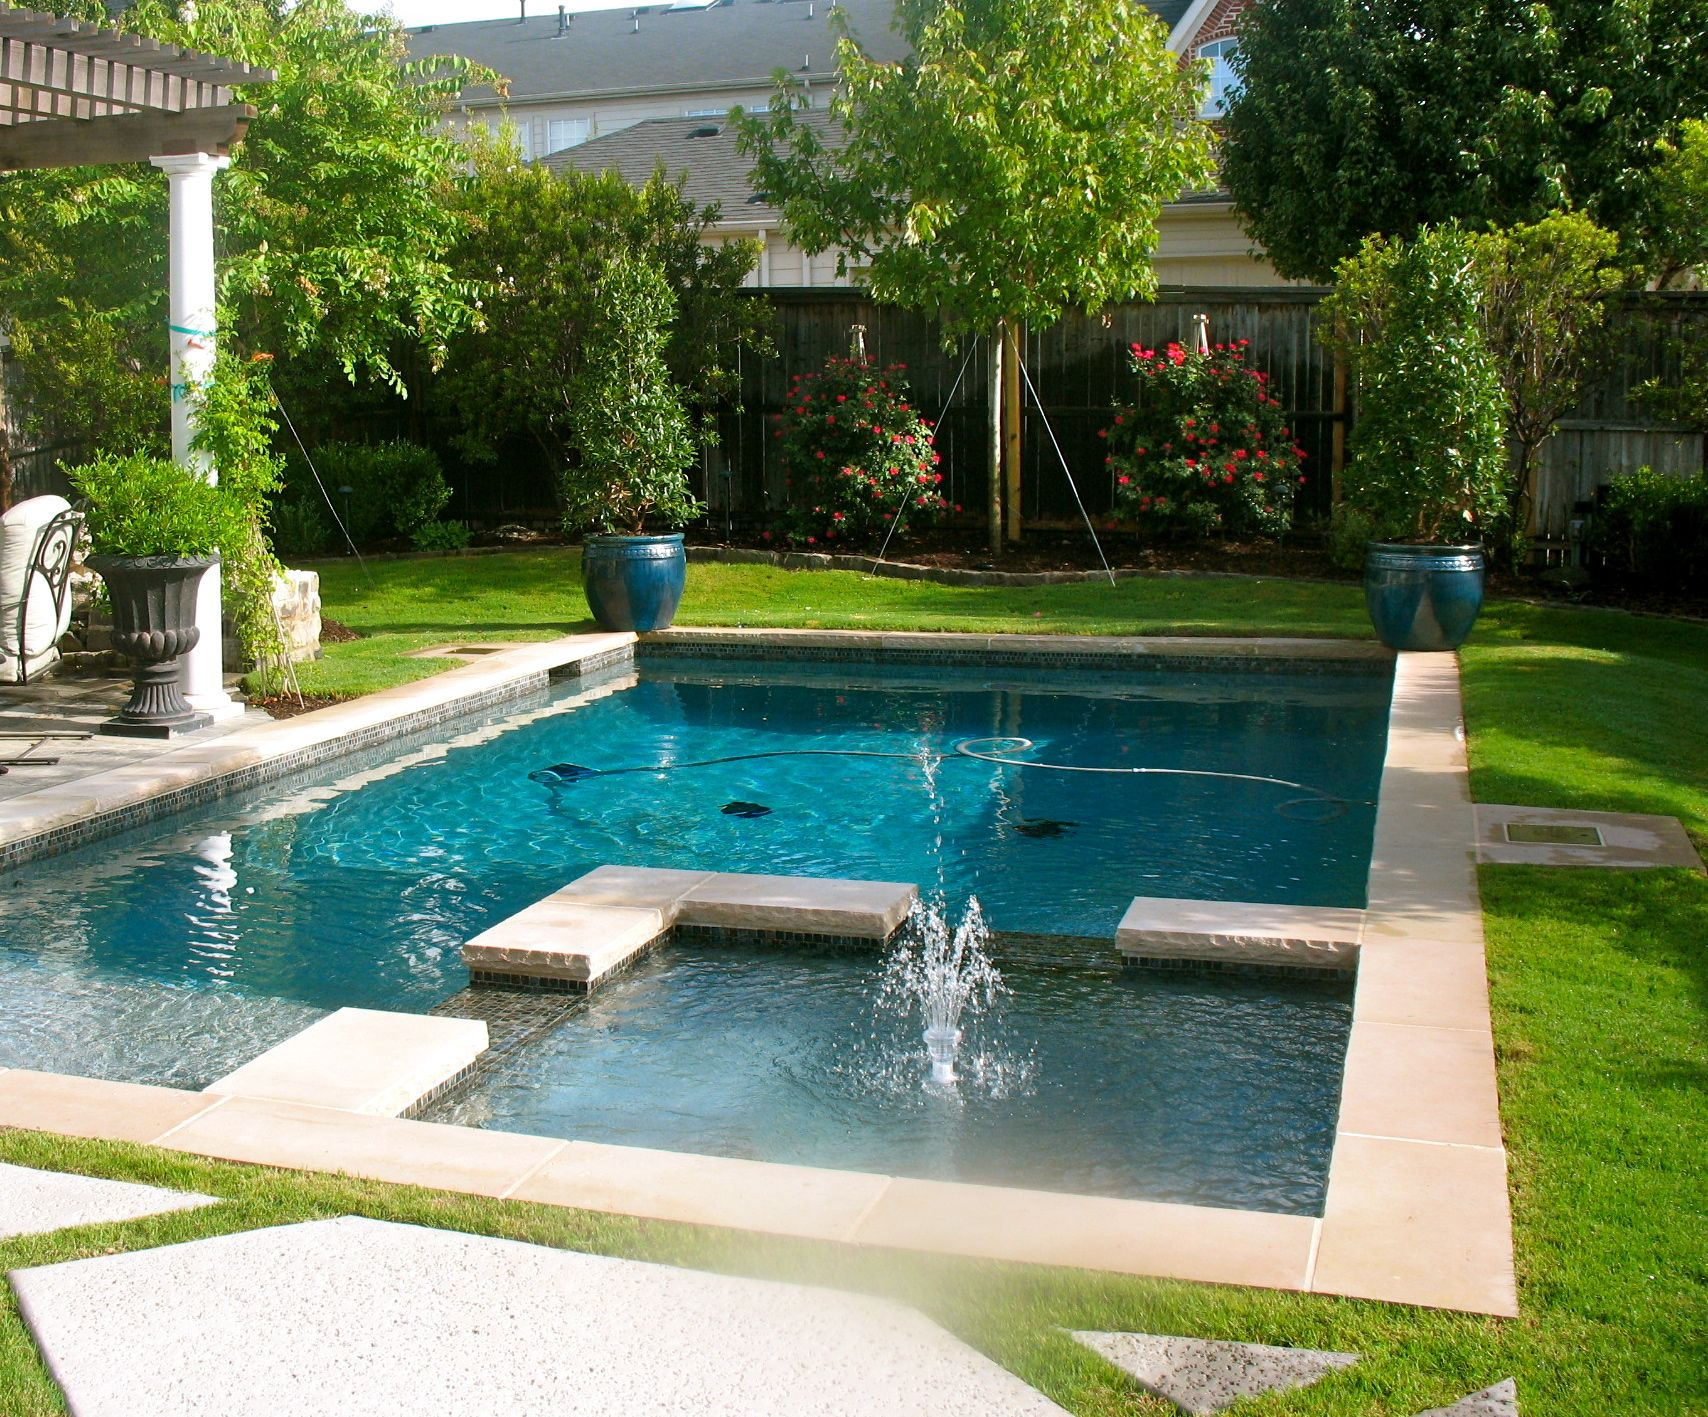 Beautiful Pool With A Jacuzzi Separated To The Side Pool Designs Beautiful Pools Backyard Pool